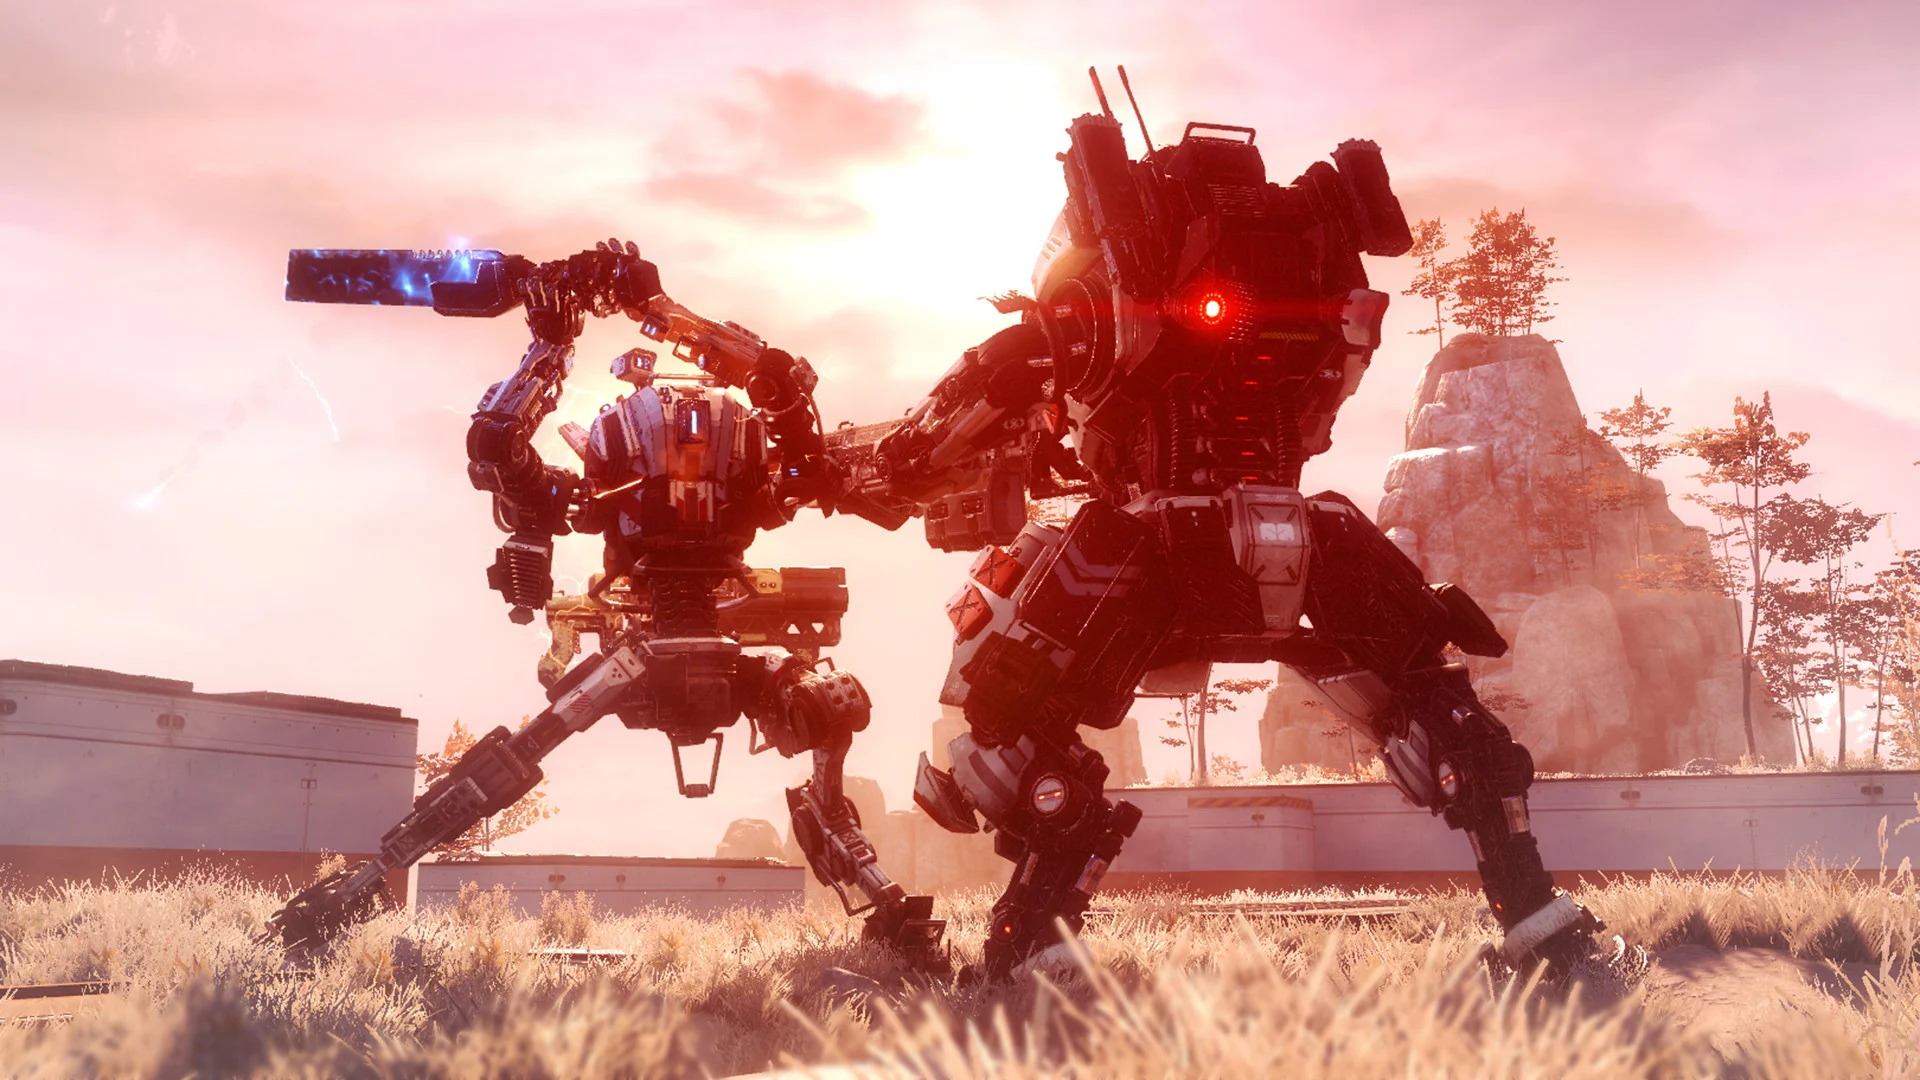 Two Titans battle in the Respawn title Titanfall 2.